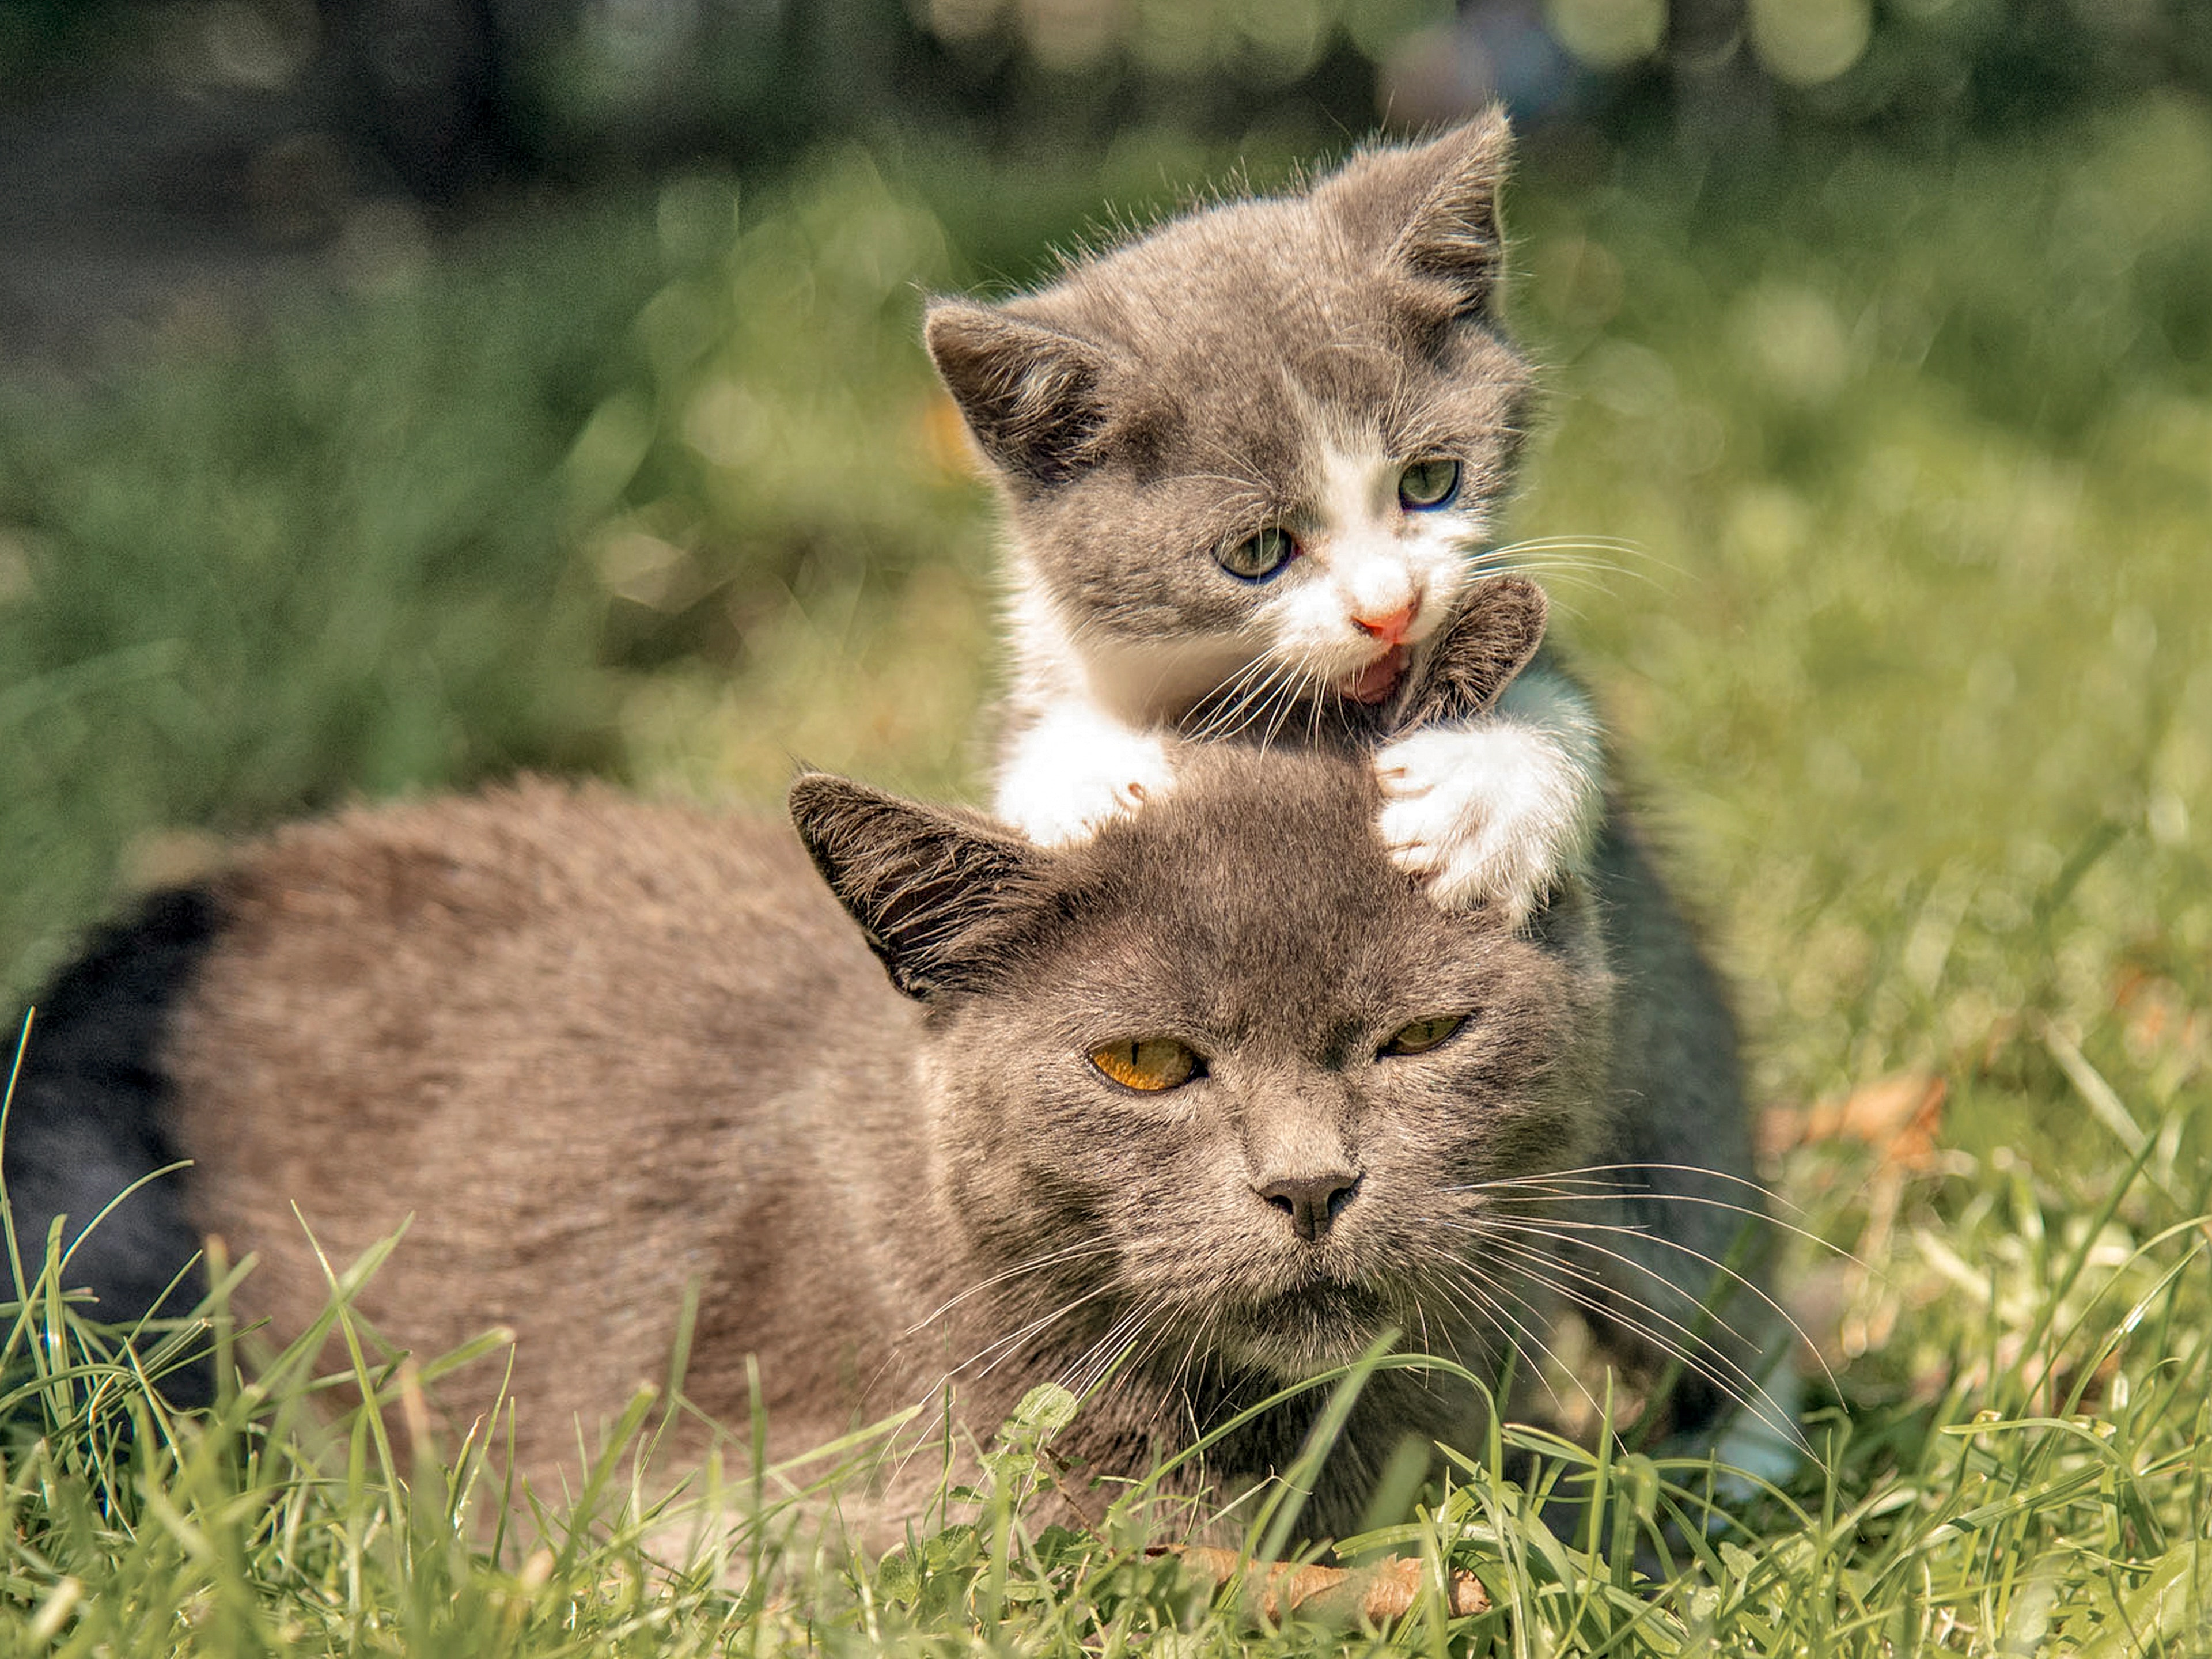 Mother and kitten playing together outside in grass